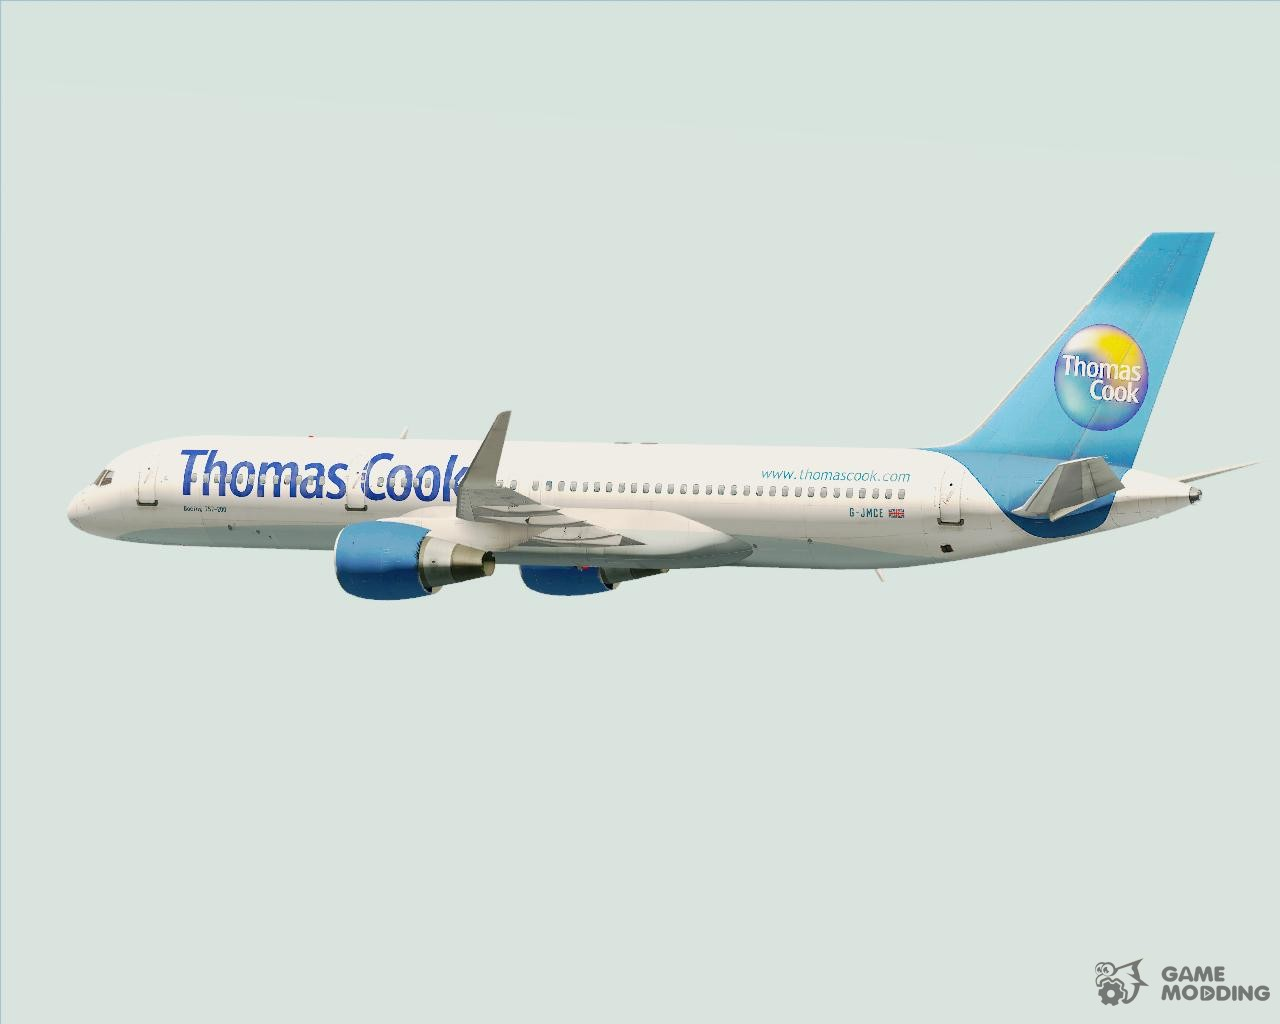 boeing 757 200 thomas cook airlines for gta san andreas boeing 757 manual pdf Boeing 797